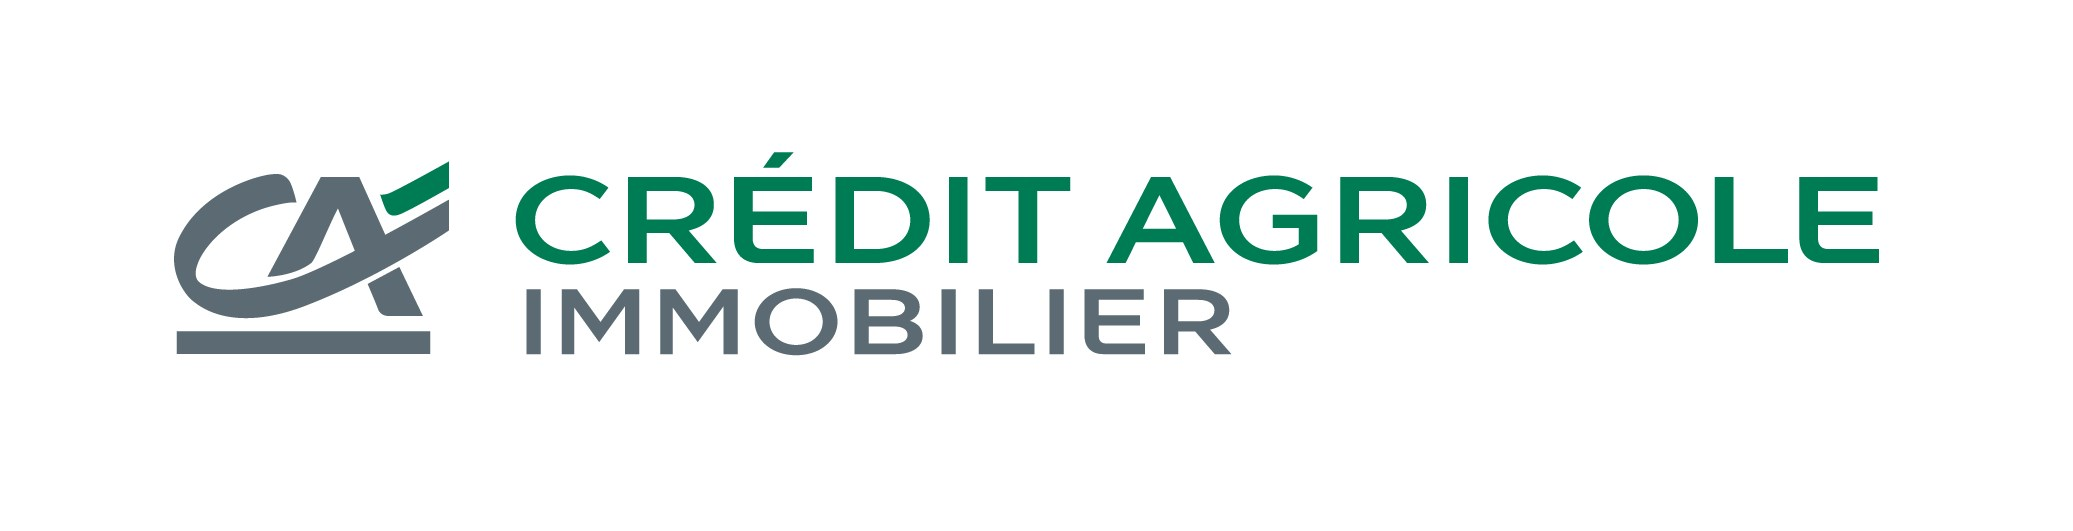 Credit agricole immobilier agence immobili re toulouse cdx 2 - Credit immobilier pour louer ...